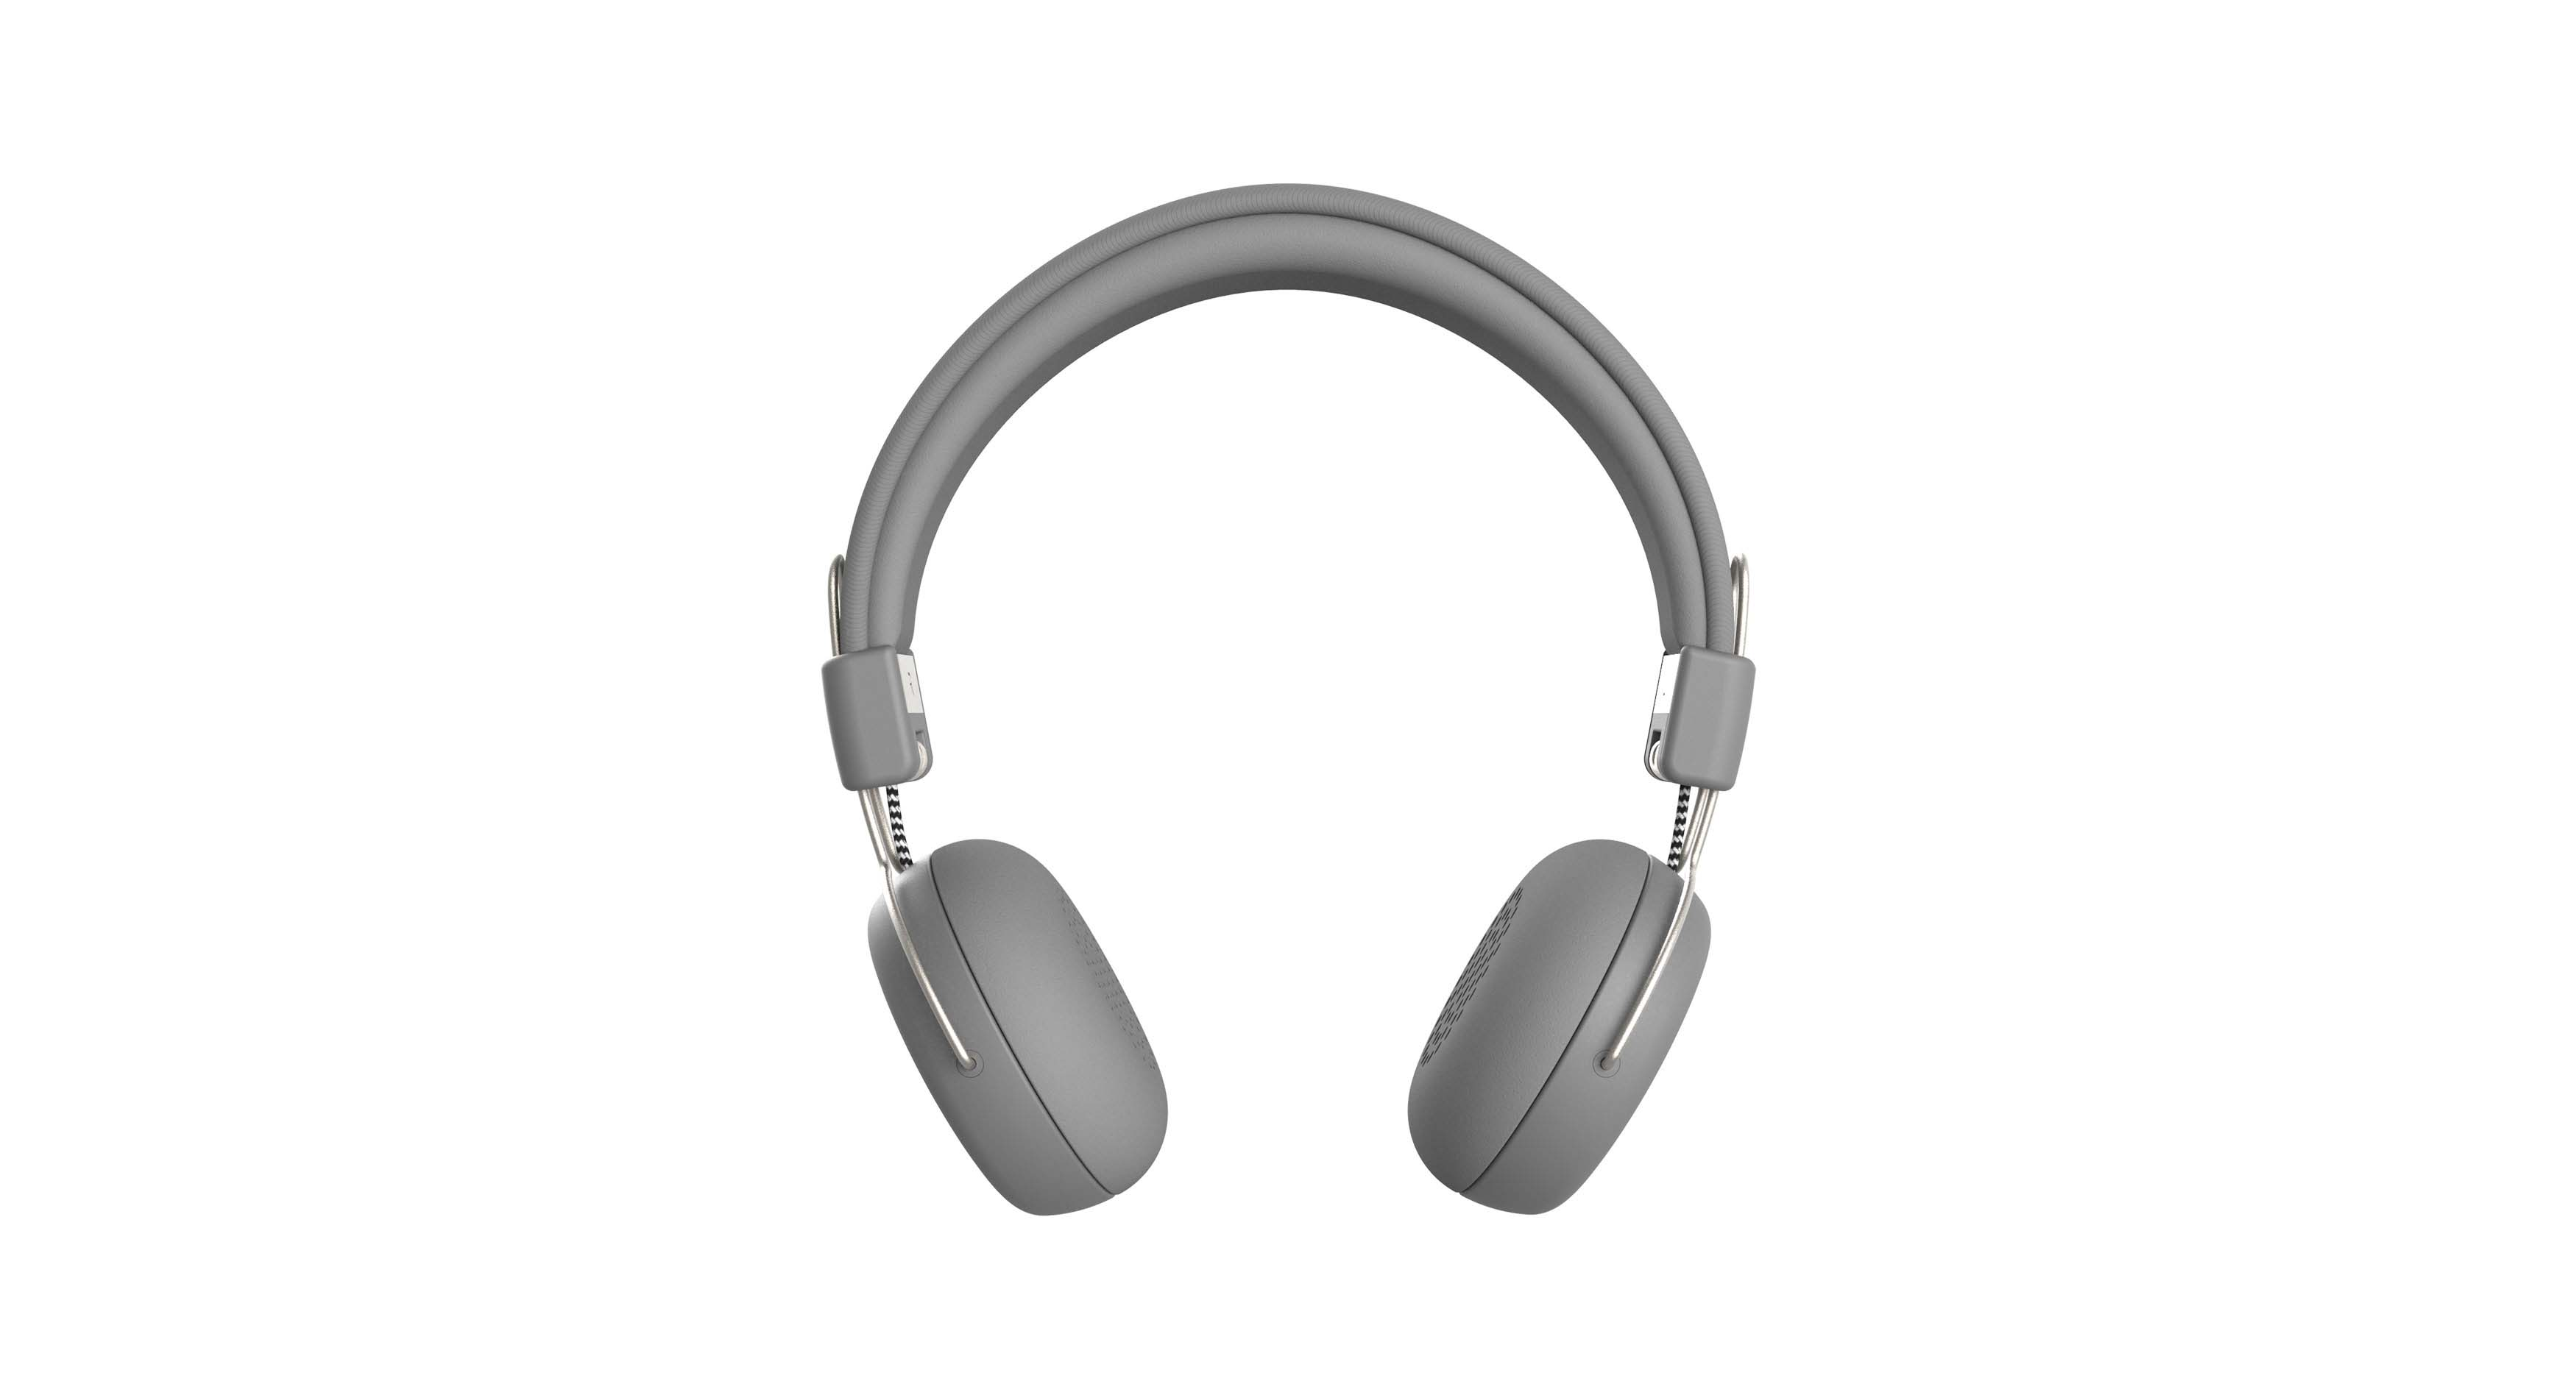 Casque audio bluetooth gris